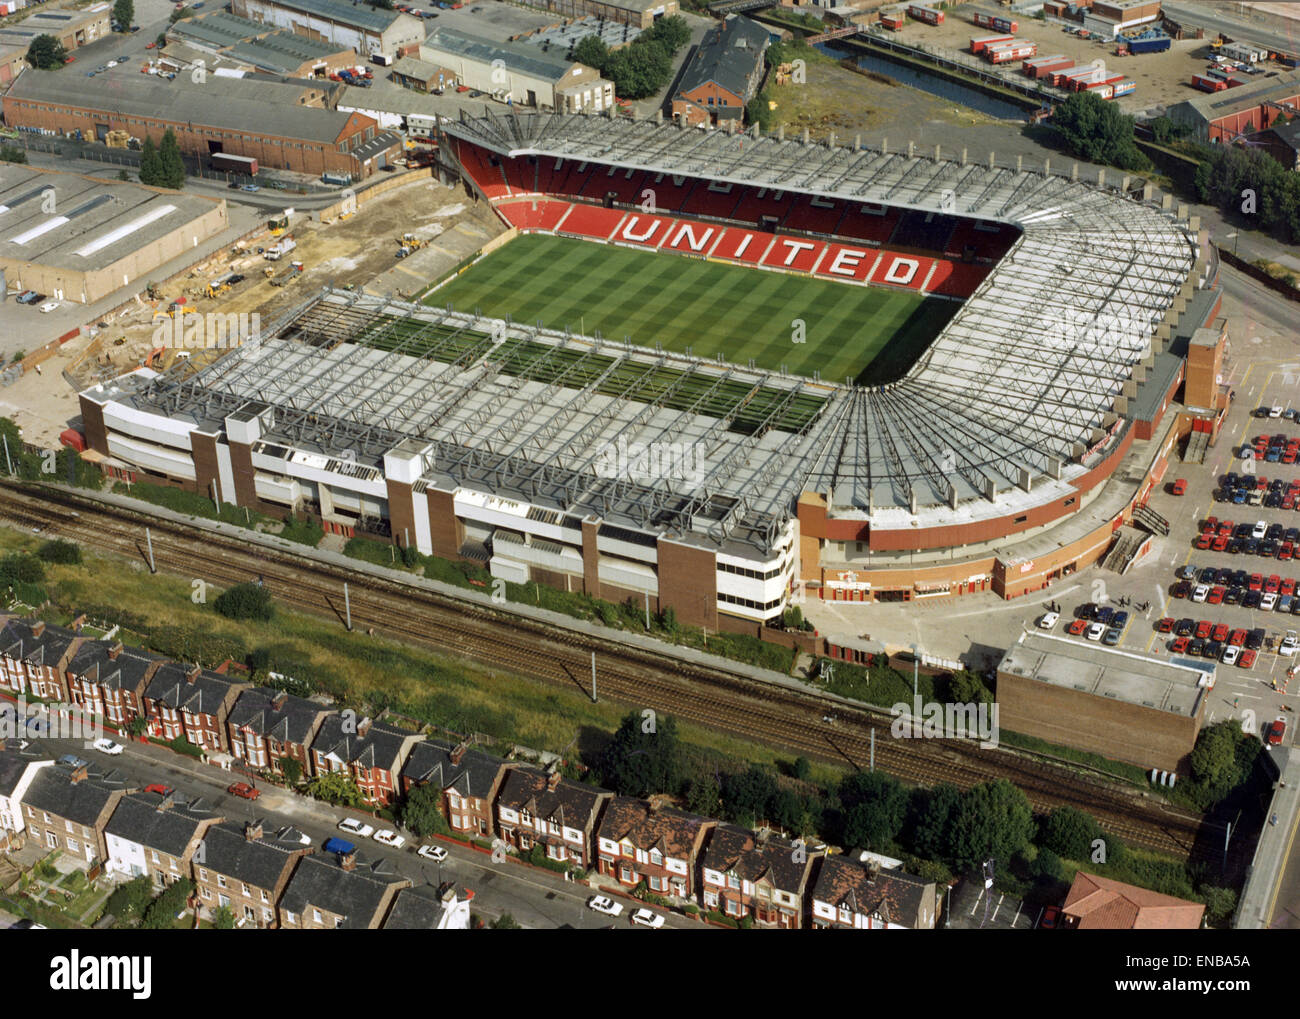 Aerial view of Old Trafford after the demolition of the Stretford End, at the close of the 1992 season to comply - Stock Image